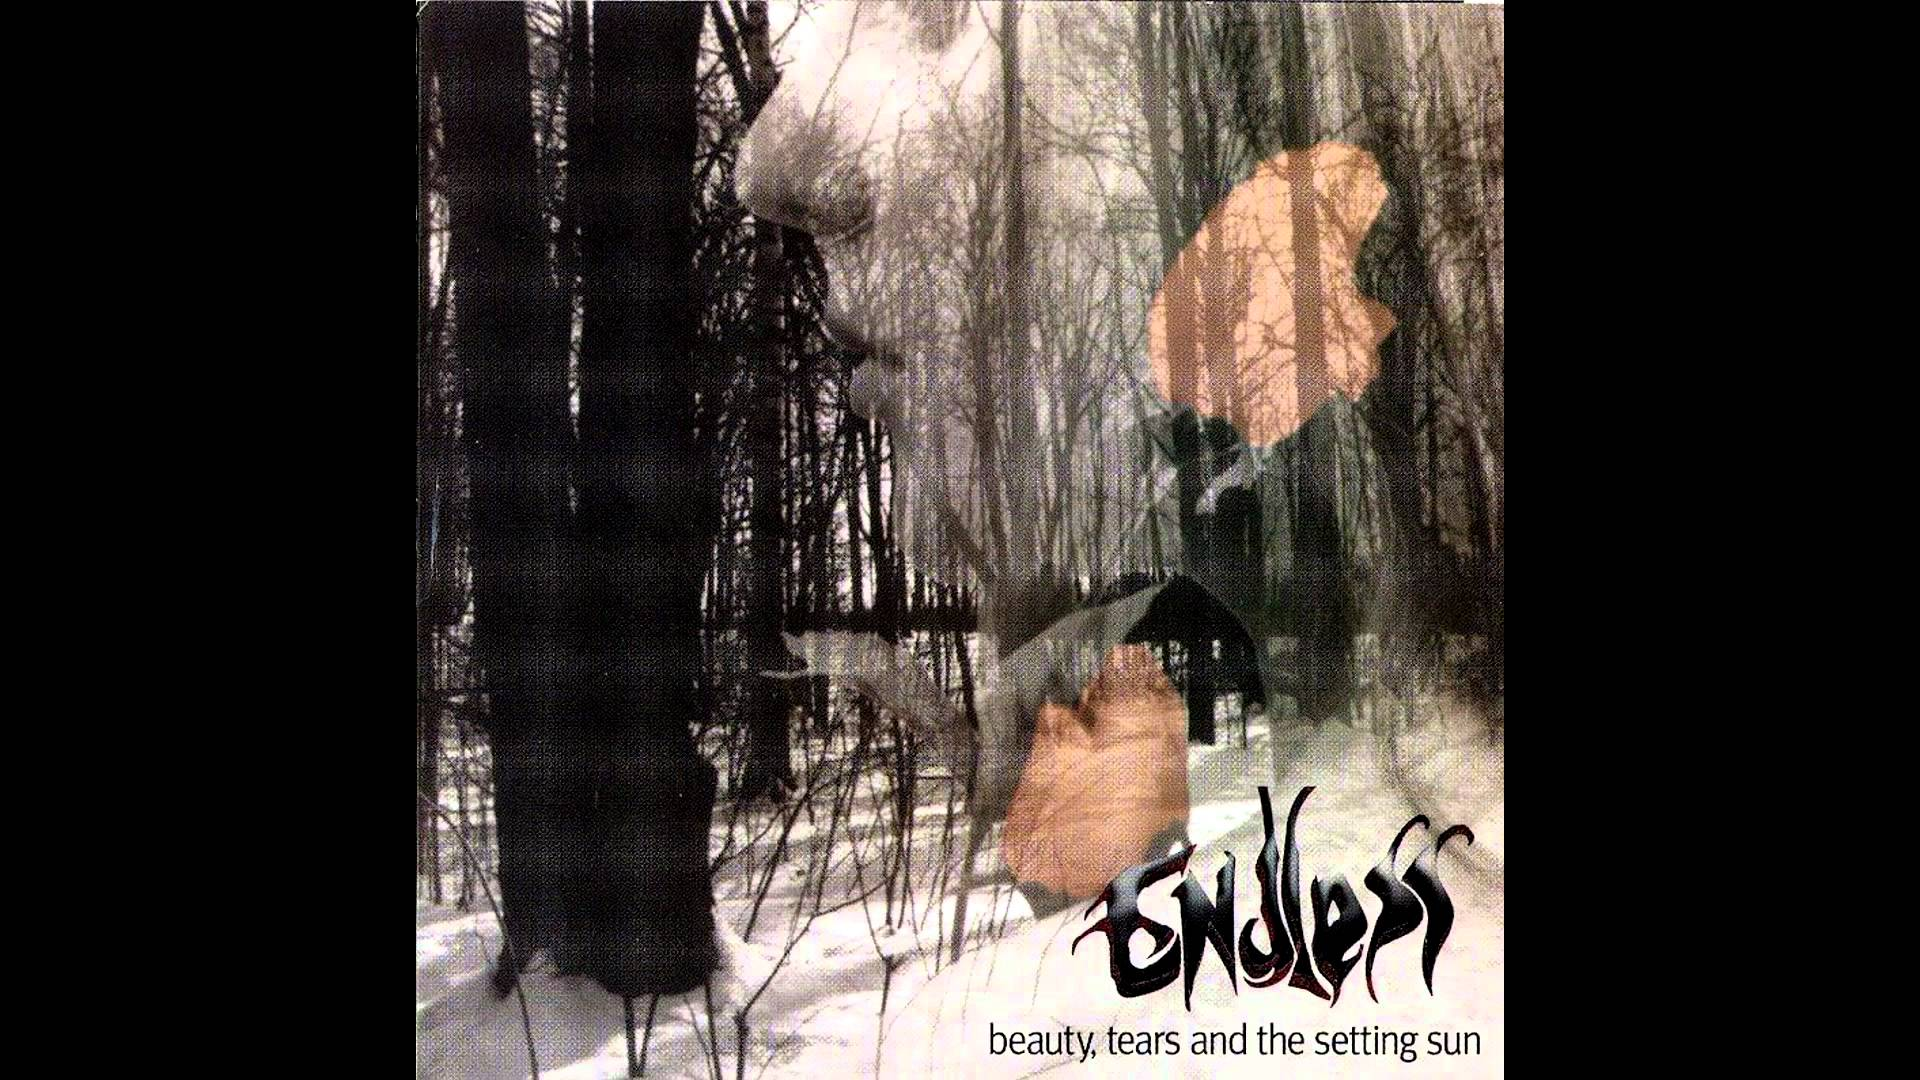 07 - Endless - The Unrest